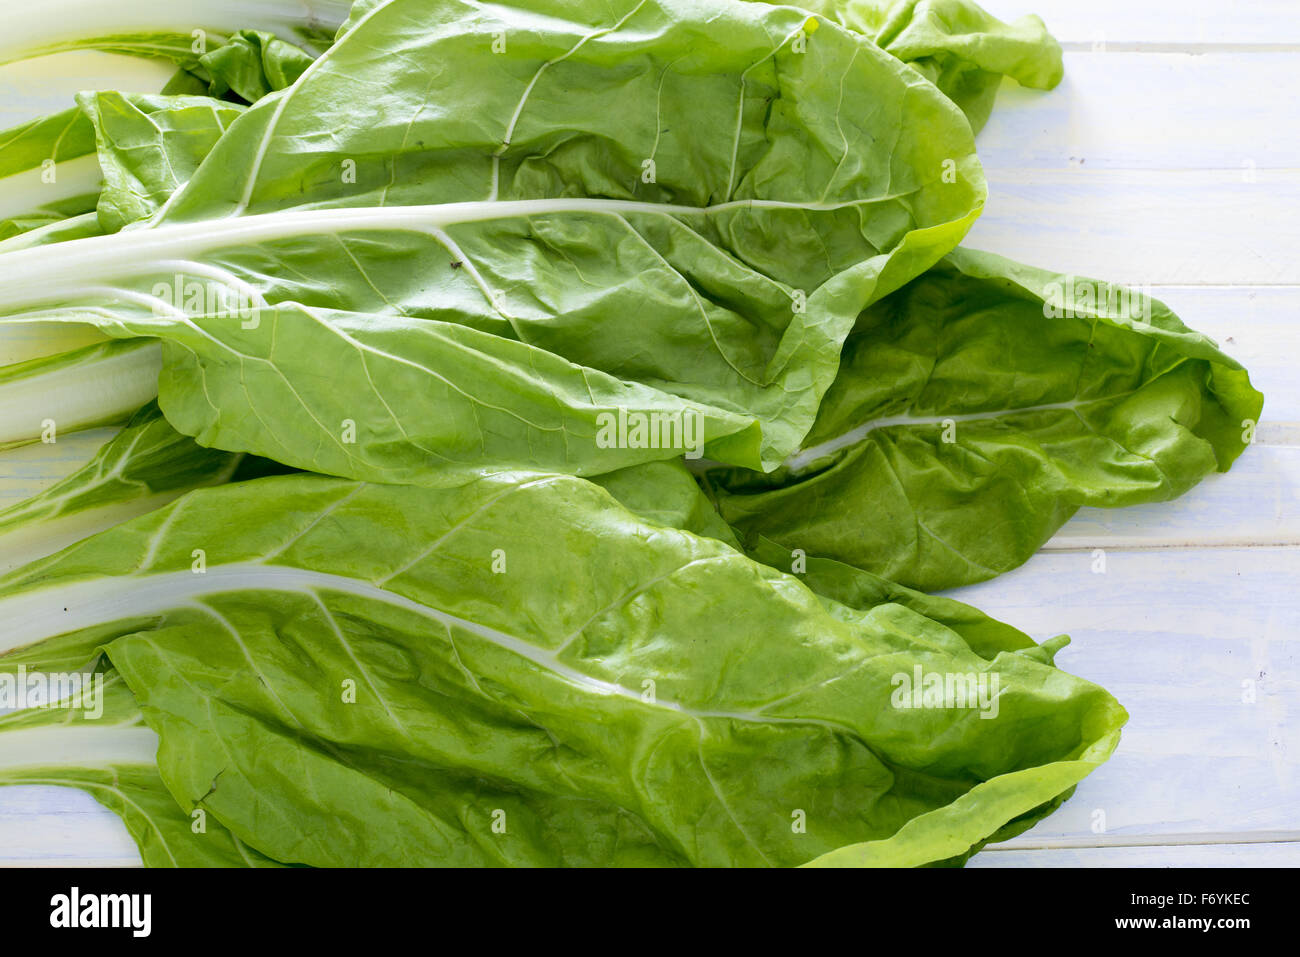 Swiss Chard Leaves On White Painted Wood Stock Photo Alamy